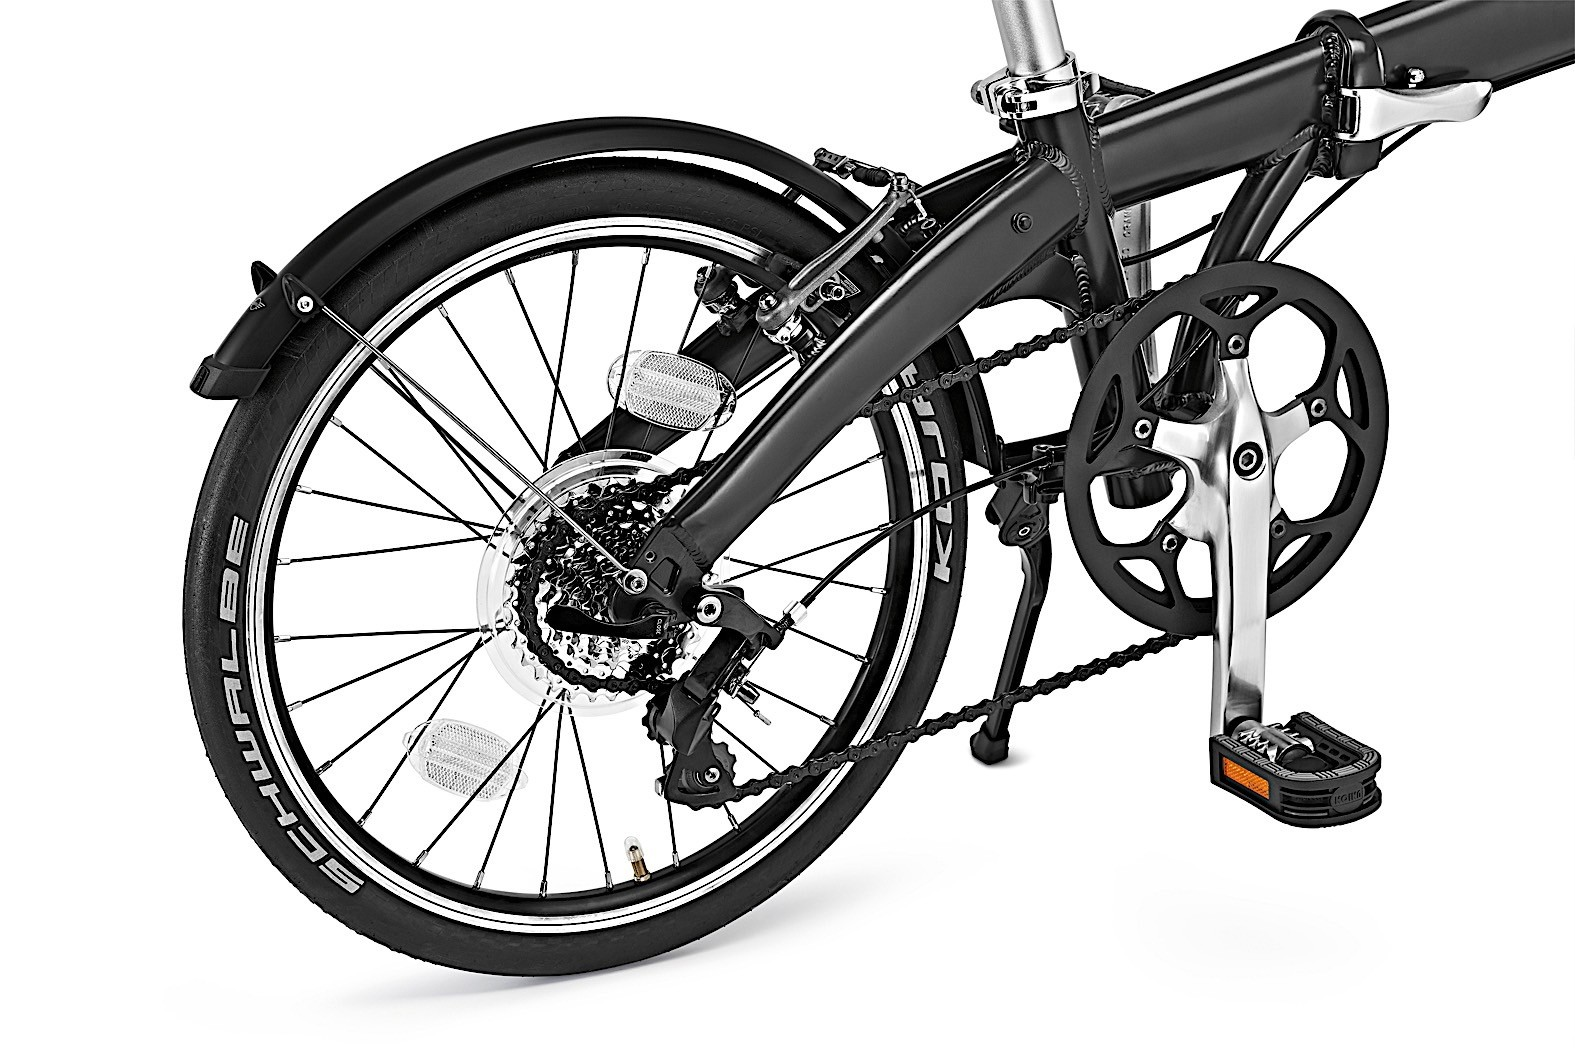 mini gets ready for sunny days with new folding bike. Black Bedroom Furniture Sets. Home Design Ideas